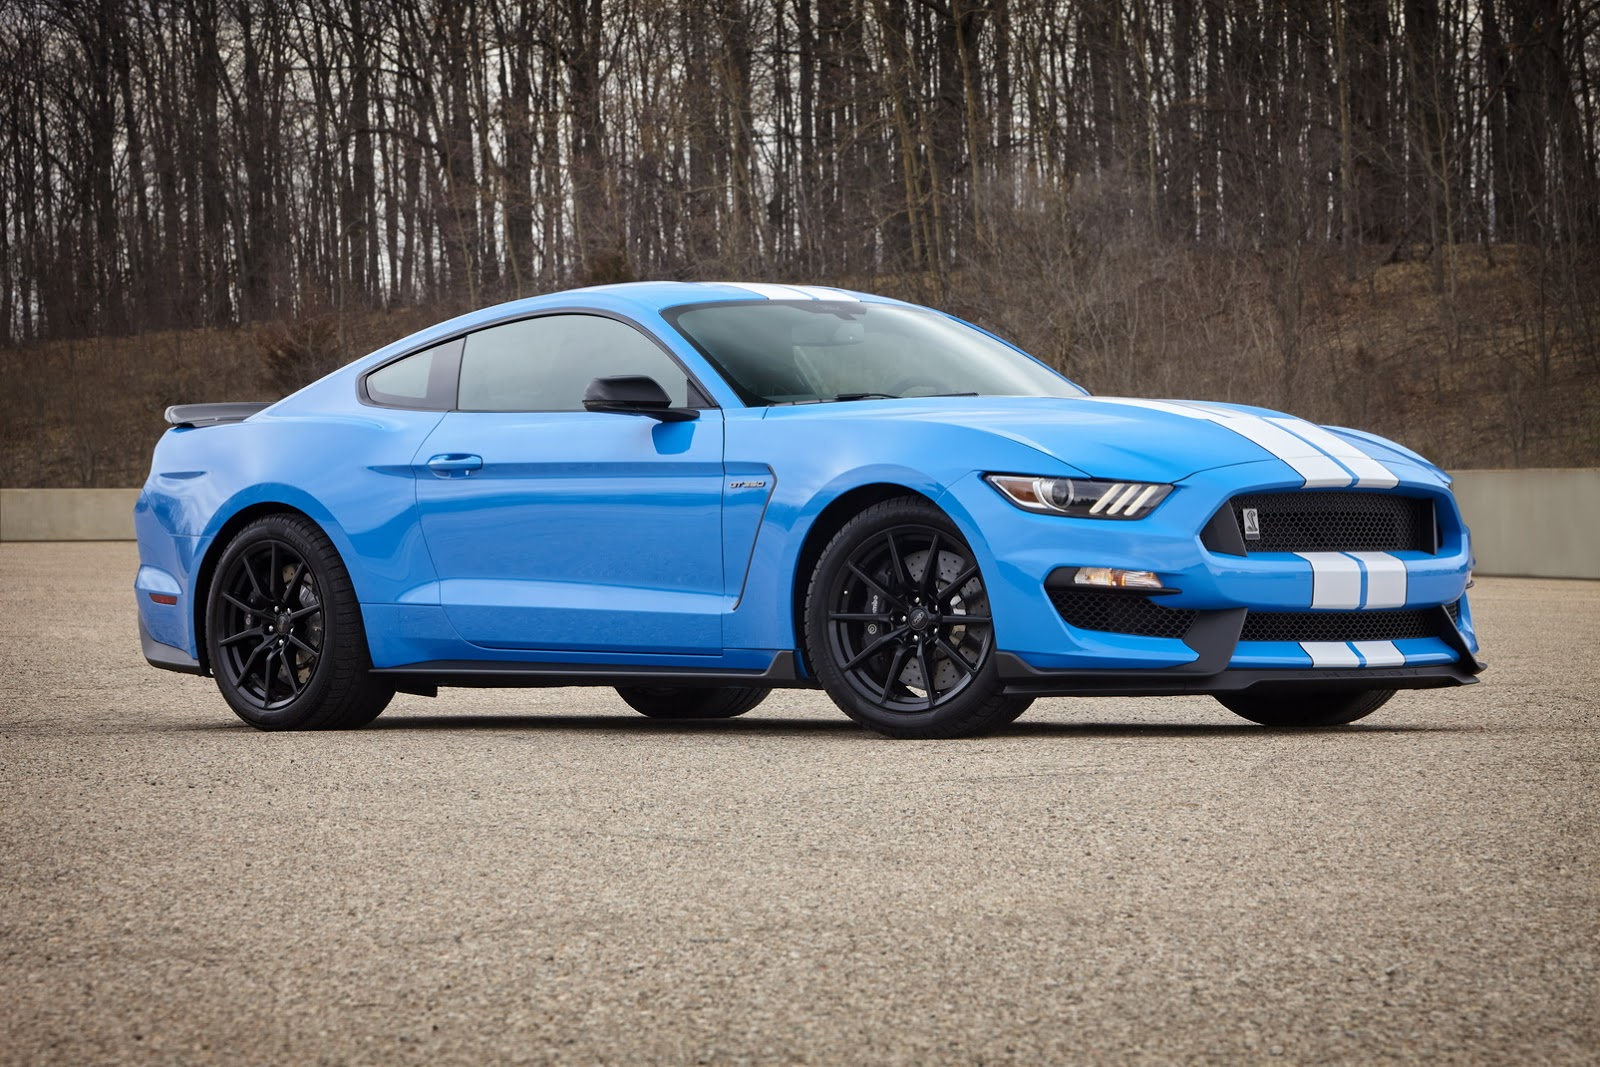 Shelby F150 For Sale >> 2017 Mustang Shelby GT350: First Pics of New Colors Are Mind-Blowing - autoevolution